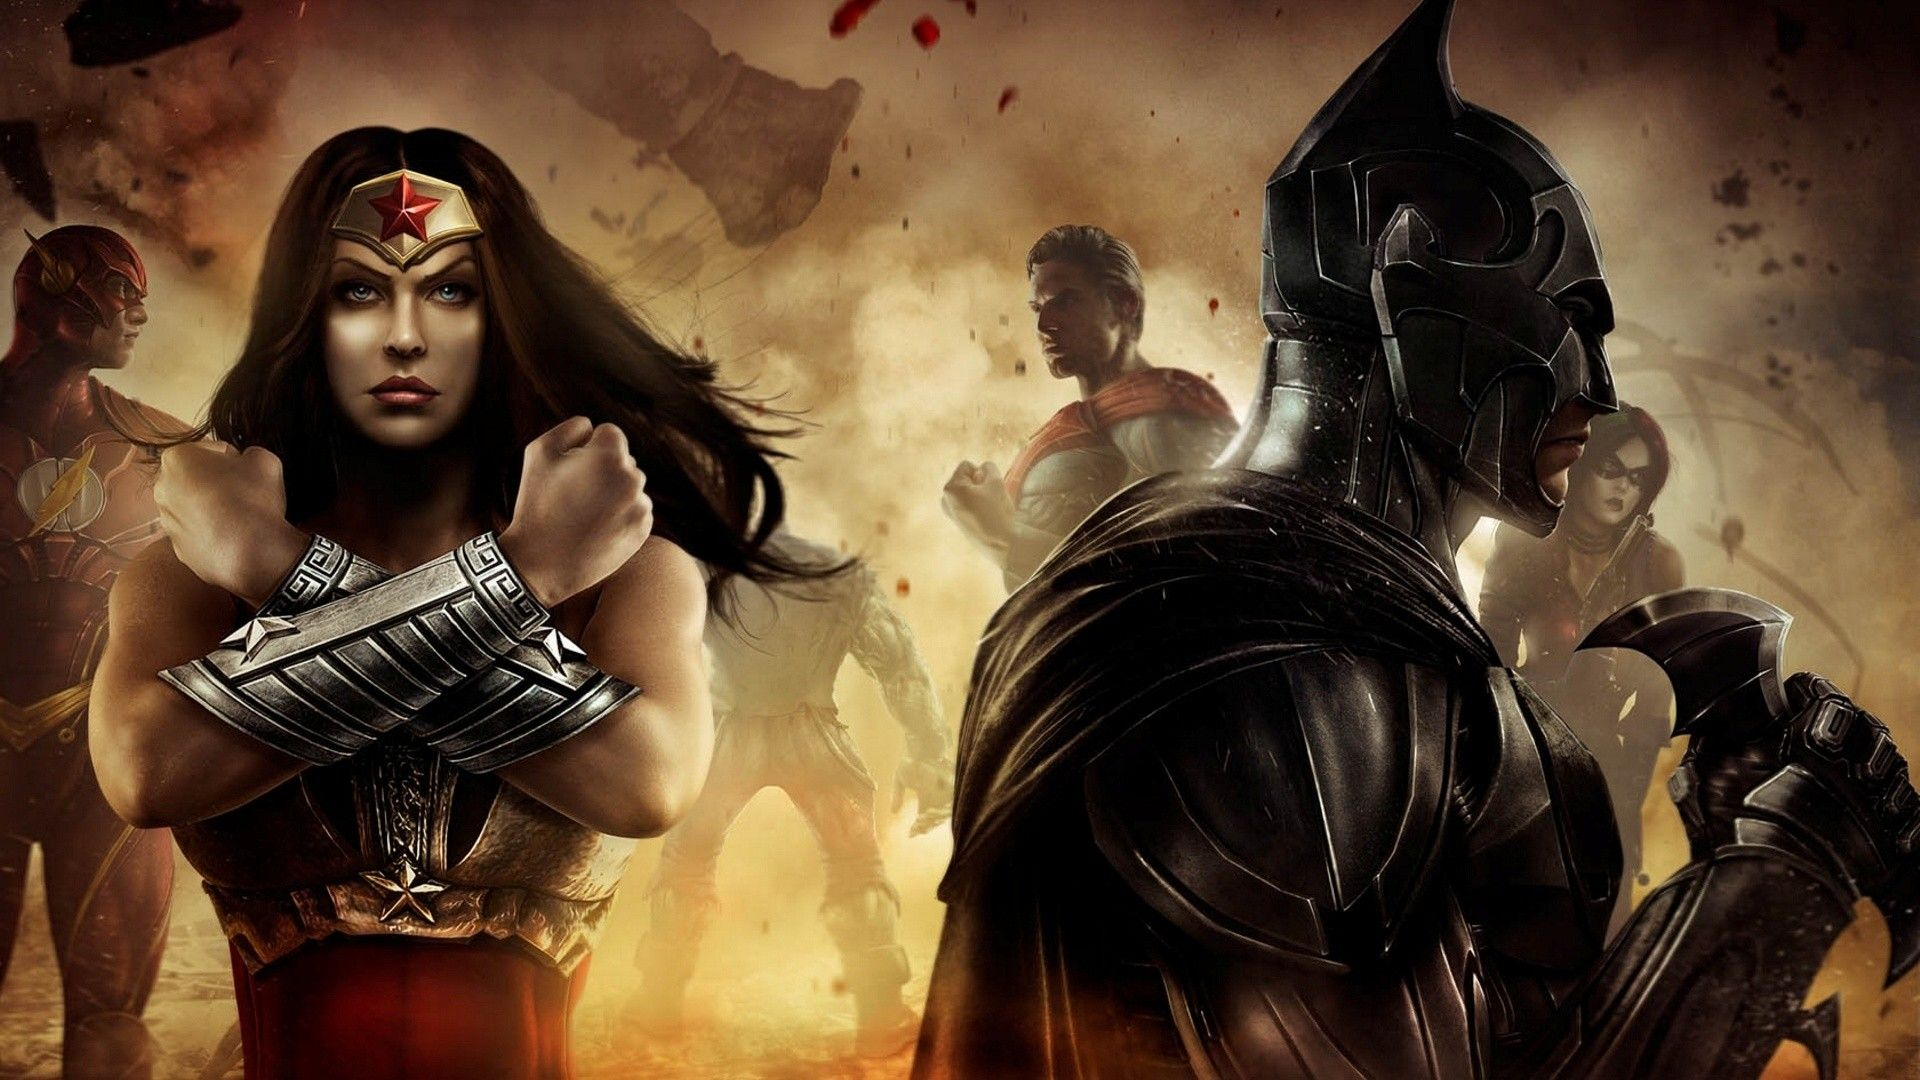 Wonder Woman Injustice Gods Among Us Batman Wonder Woman Batman Superman Wonder Woman Wonder Woman Movie